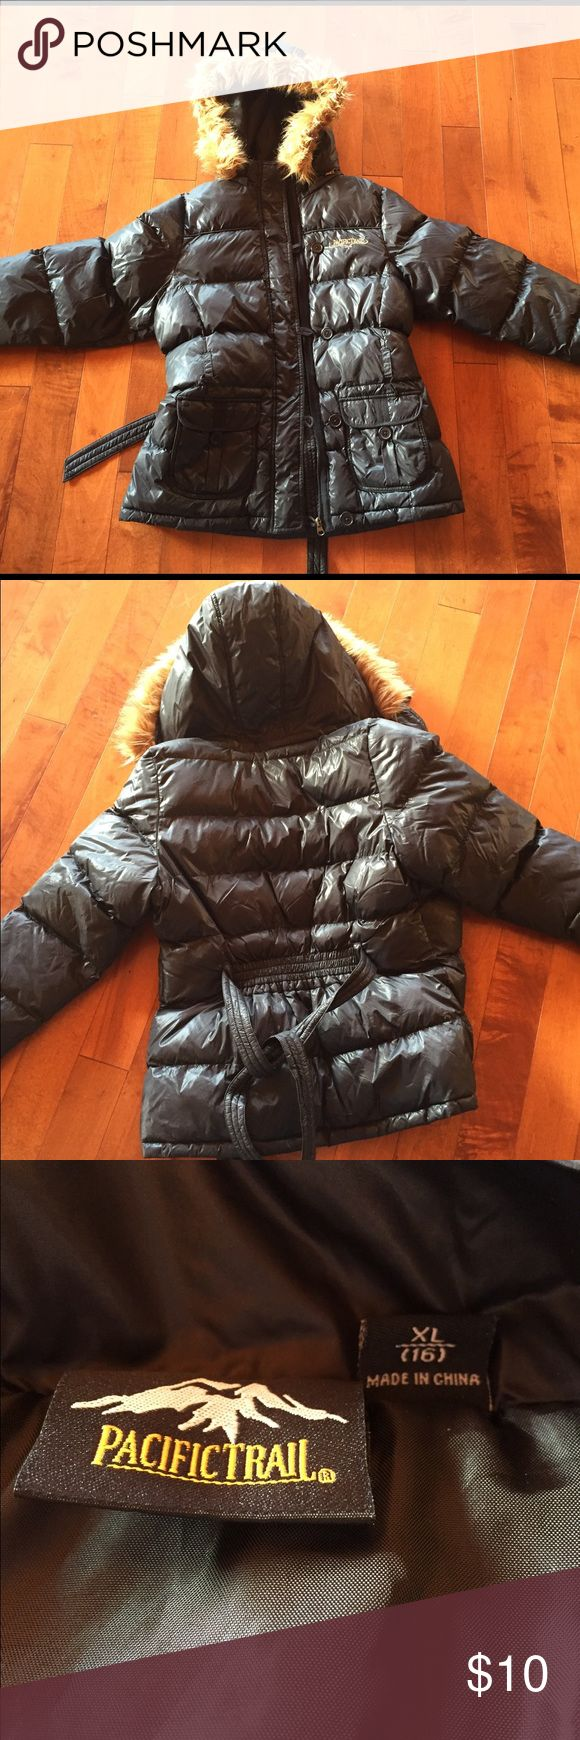 Kids puffer jacket Very warm puffer jacket. In excellent condition including the fur hood liner. Pacific Trail Jackets & Coats Puffers